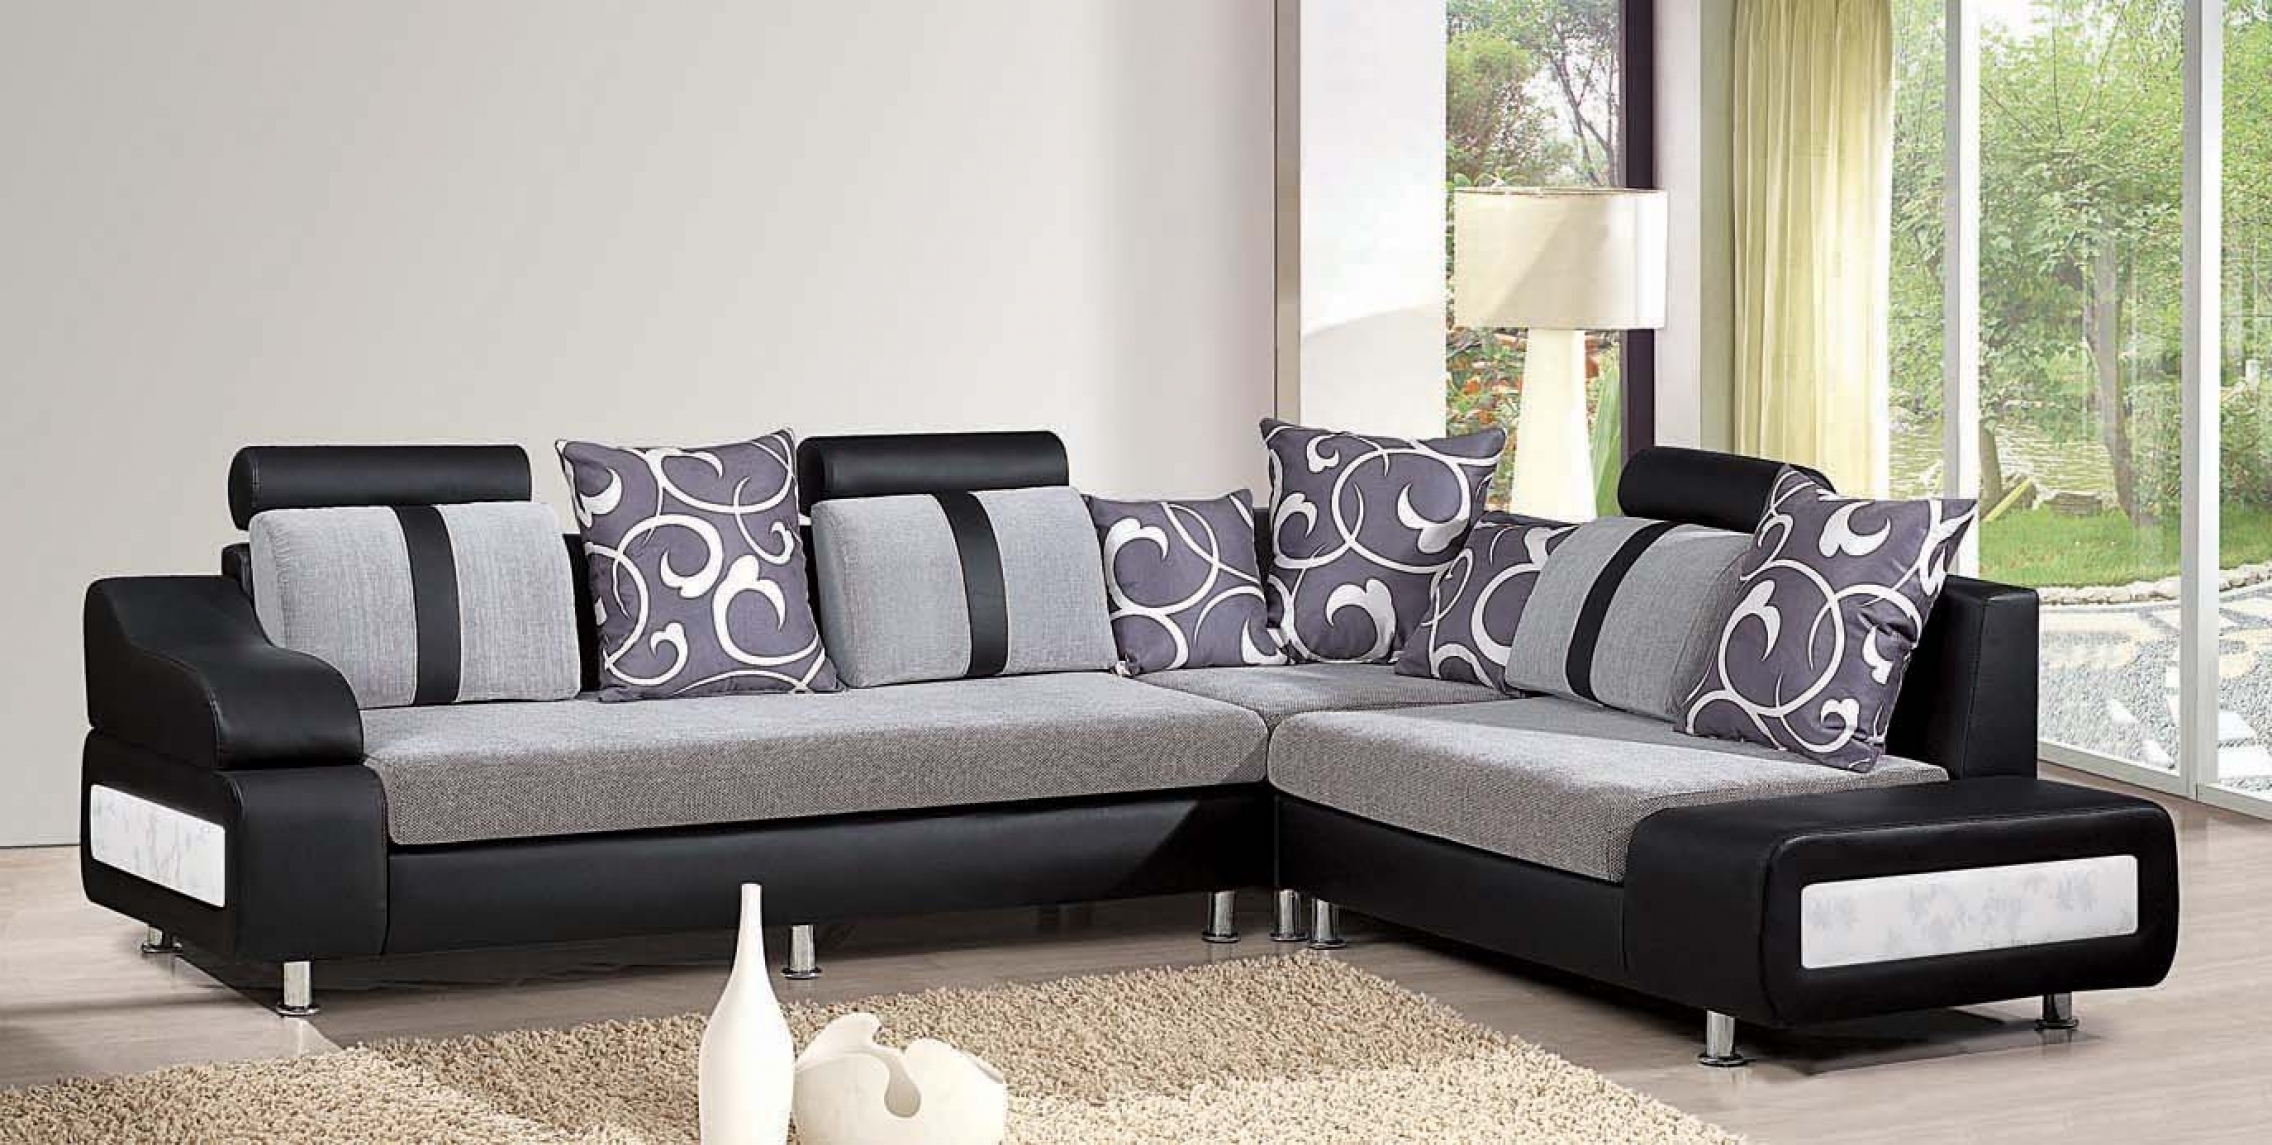 Elegant Sofas And Chairs Throughout Famous Living Room: Great Sofa Chairs For Living Room American Signature (View 8 of 15)